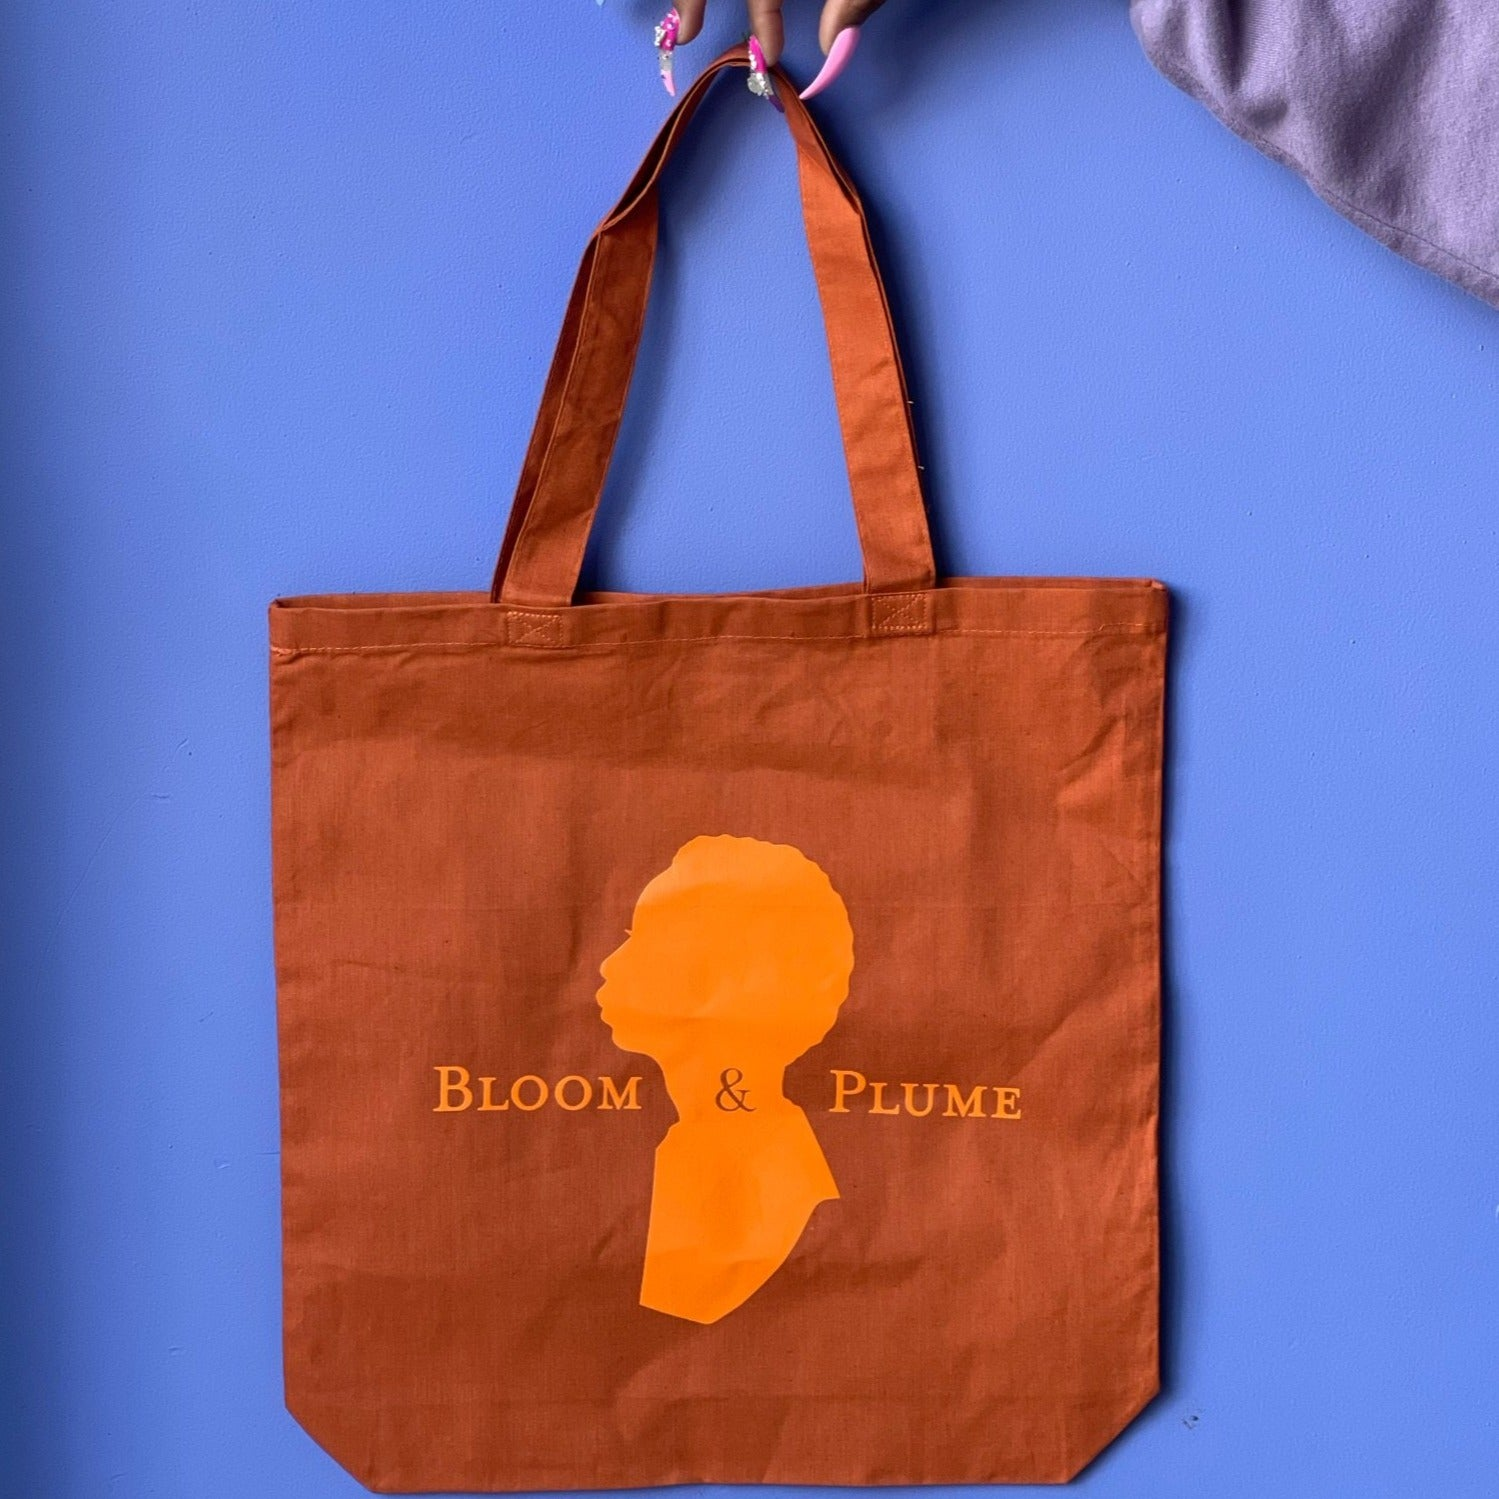 Bloom & Plume Graphic Tote